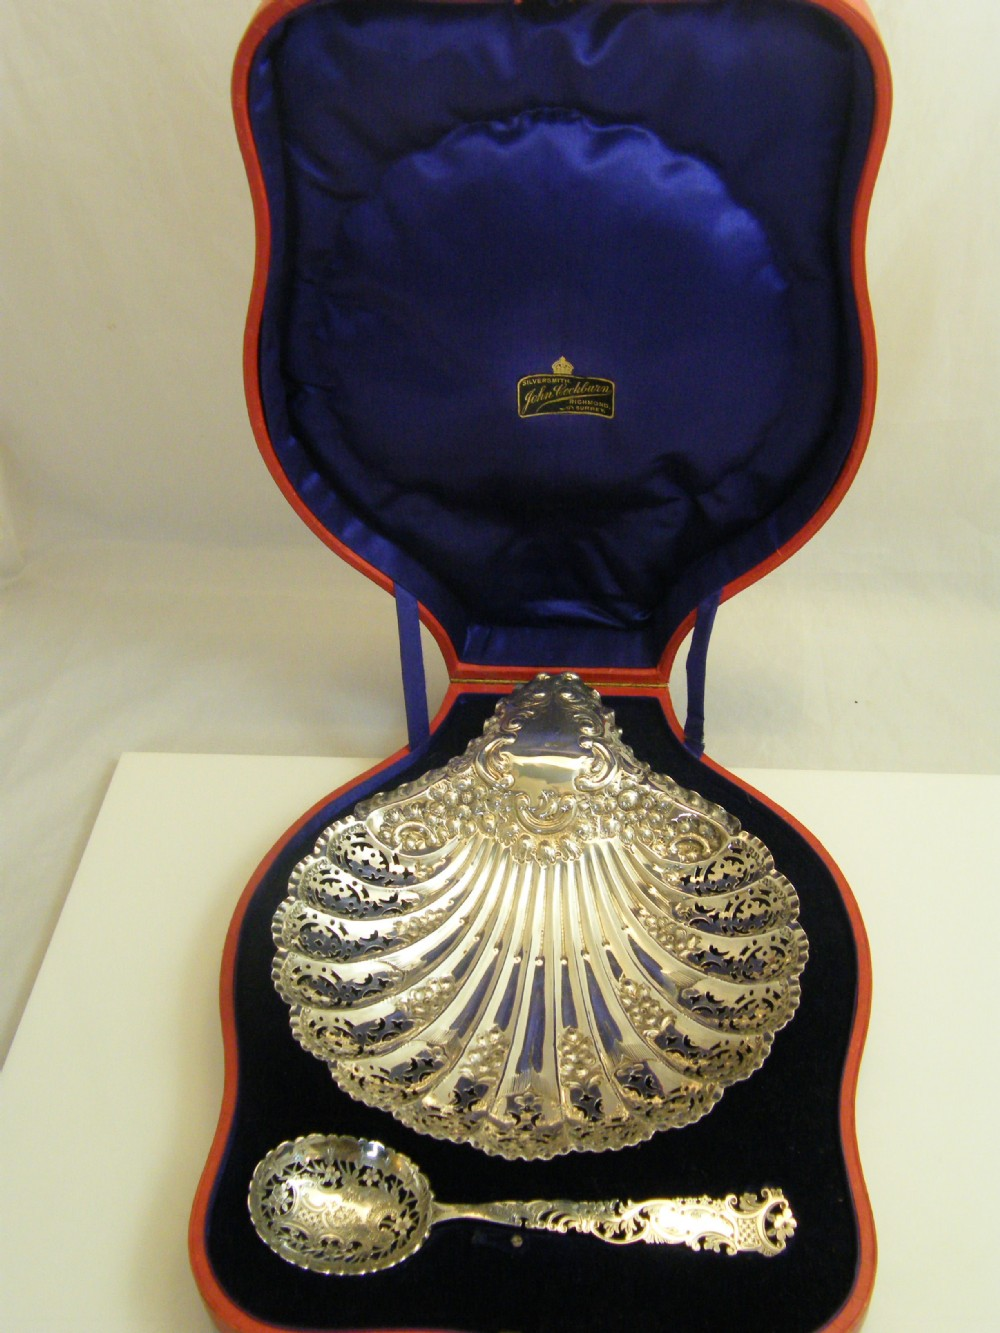 silver hallmarked sheffield 190304 pierced scalloped shell dish spoon in superb presentation case